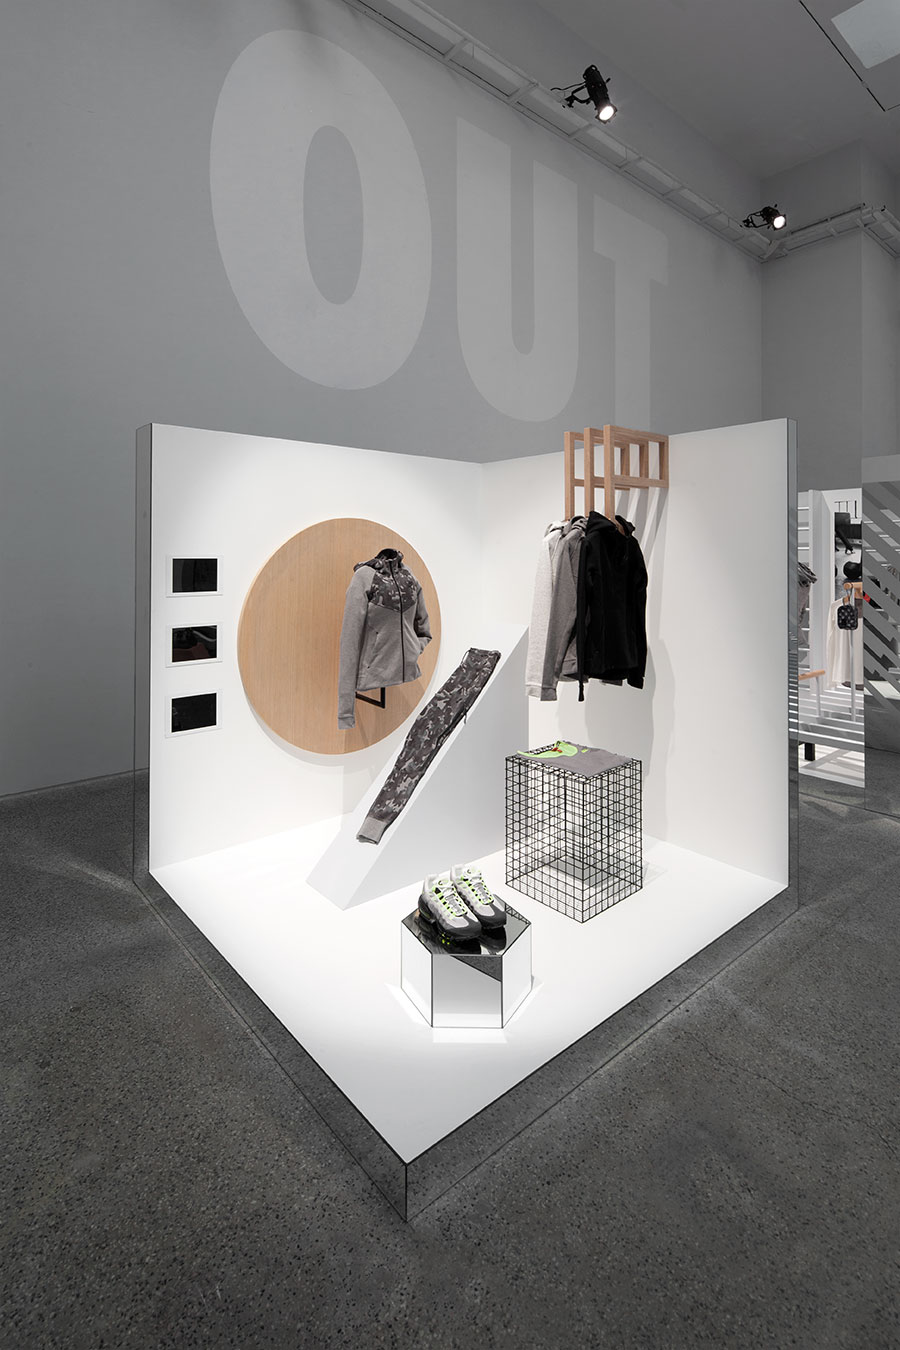 NKS_HO15_Sportswear_02-coordination-asia-design-agency-firm-nike-studio-bejing-popup-exhibition-retail